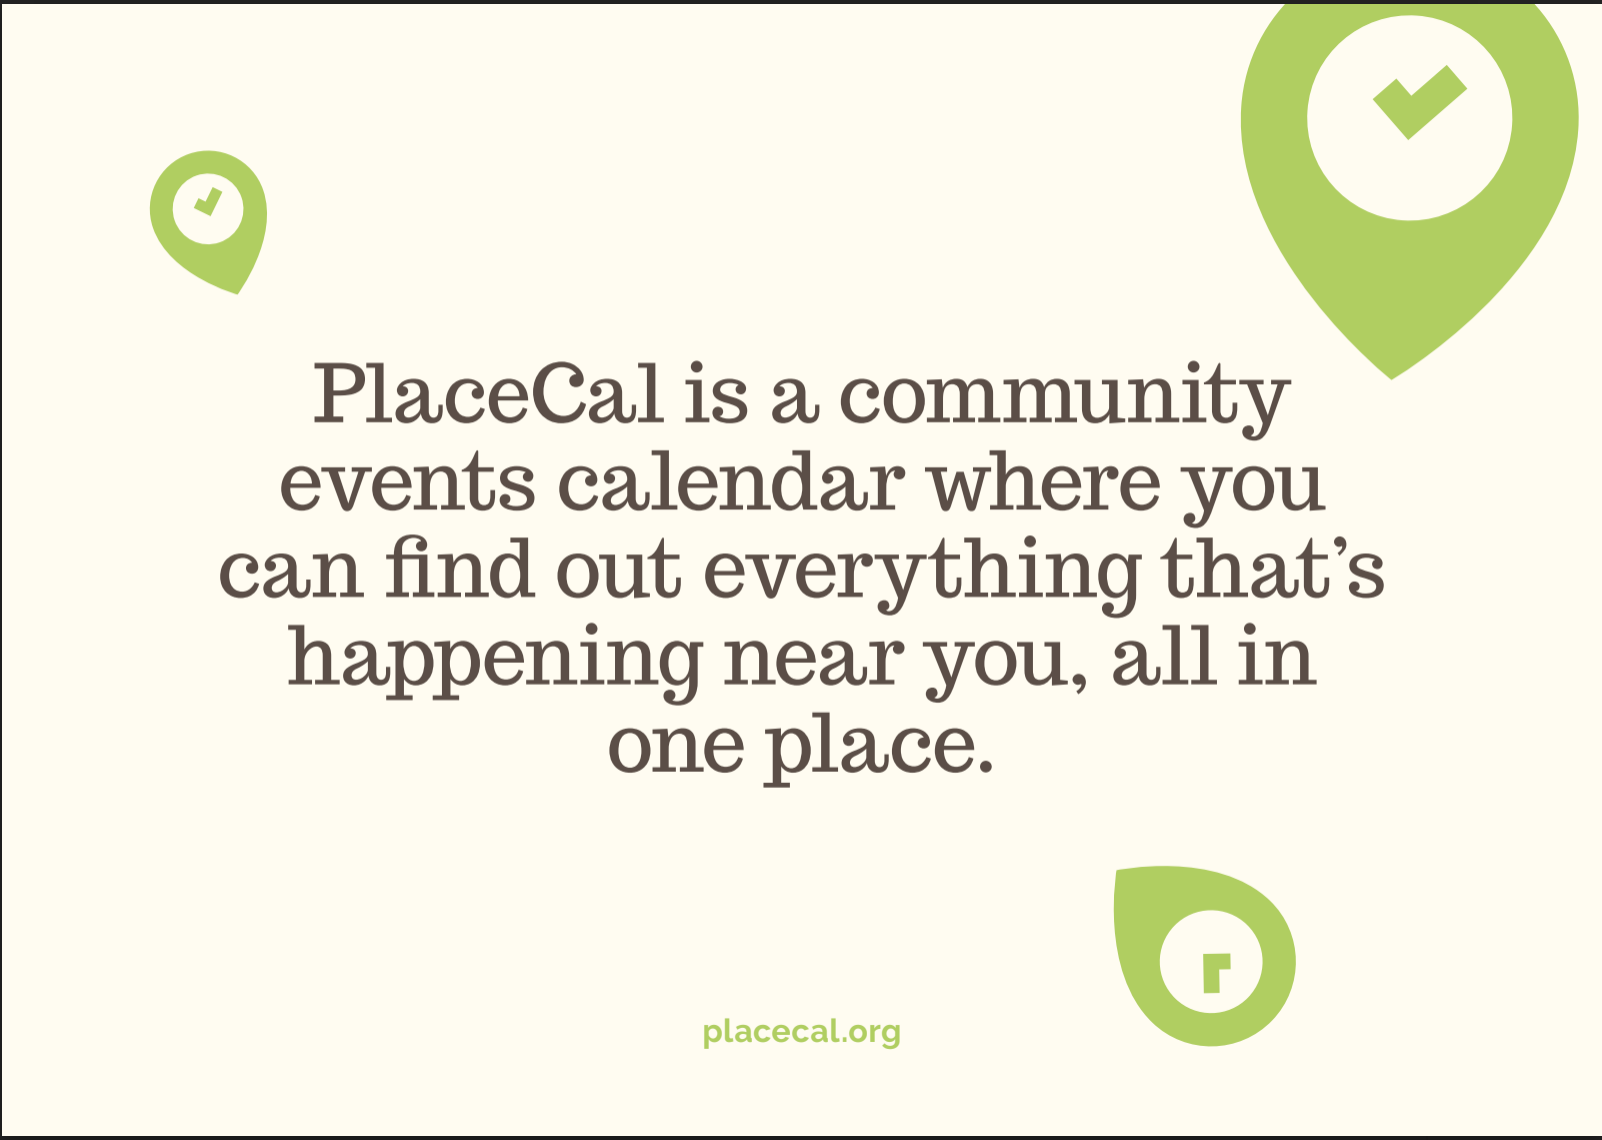 PlaceCal definition